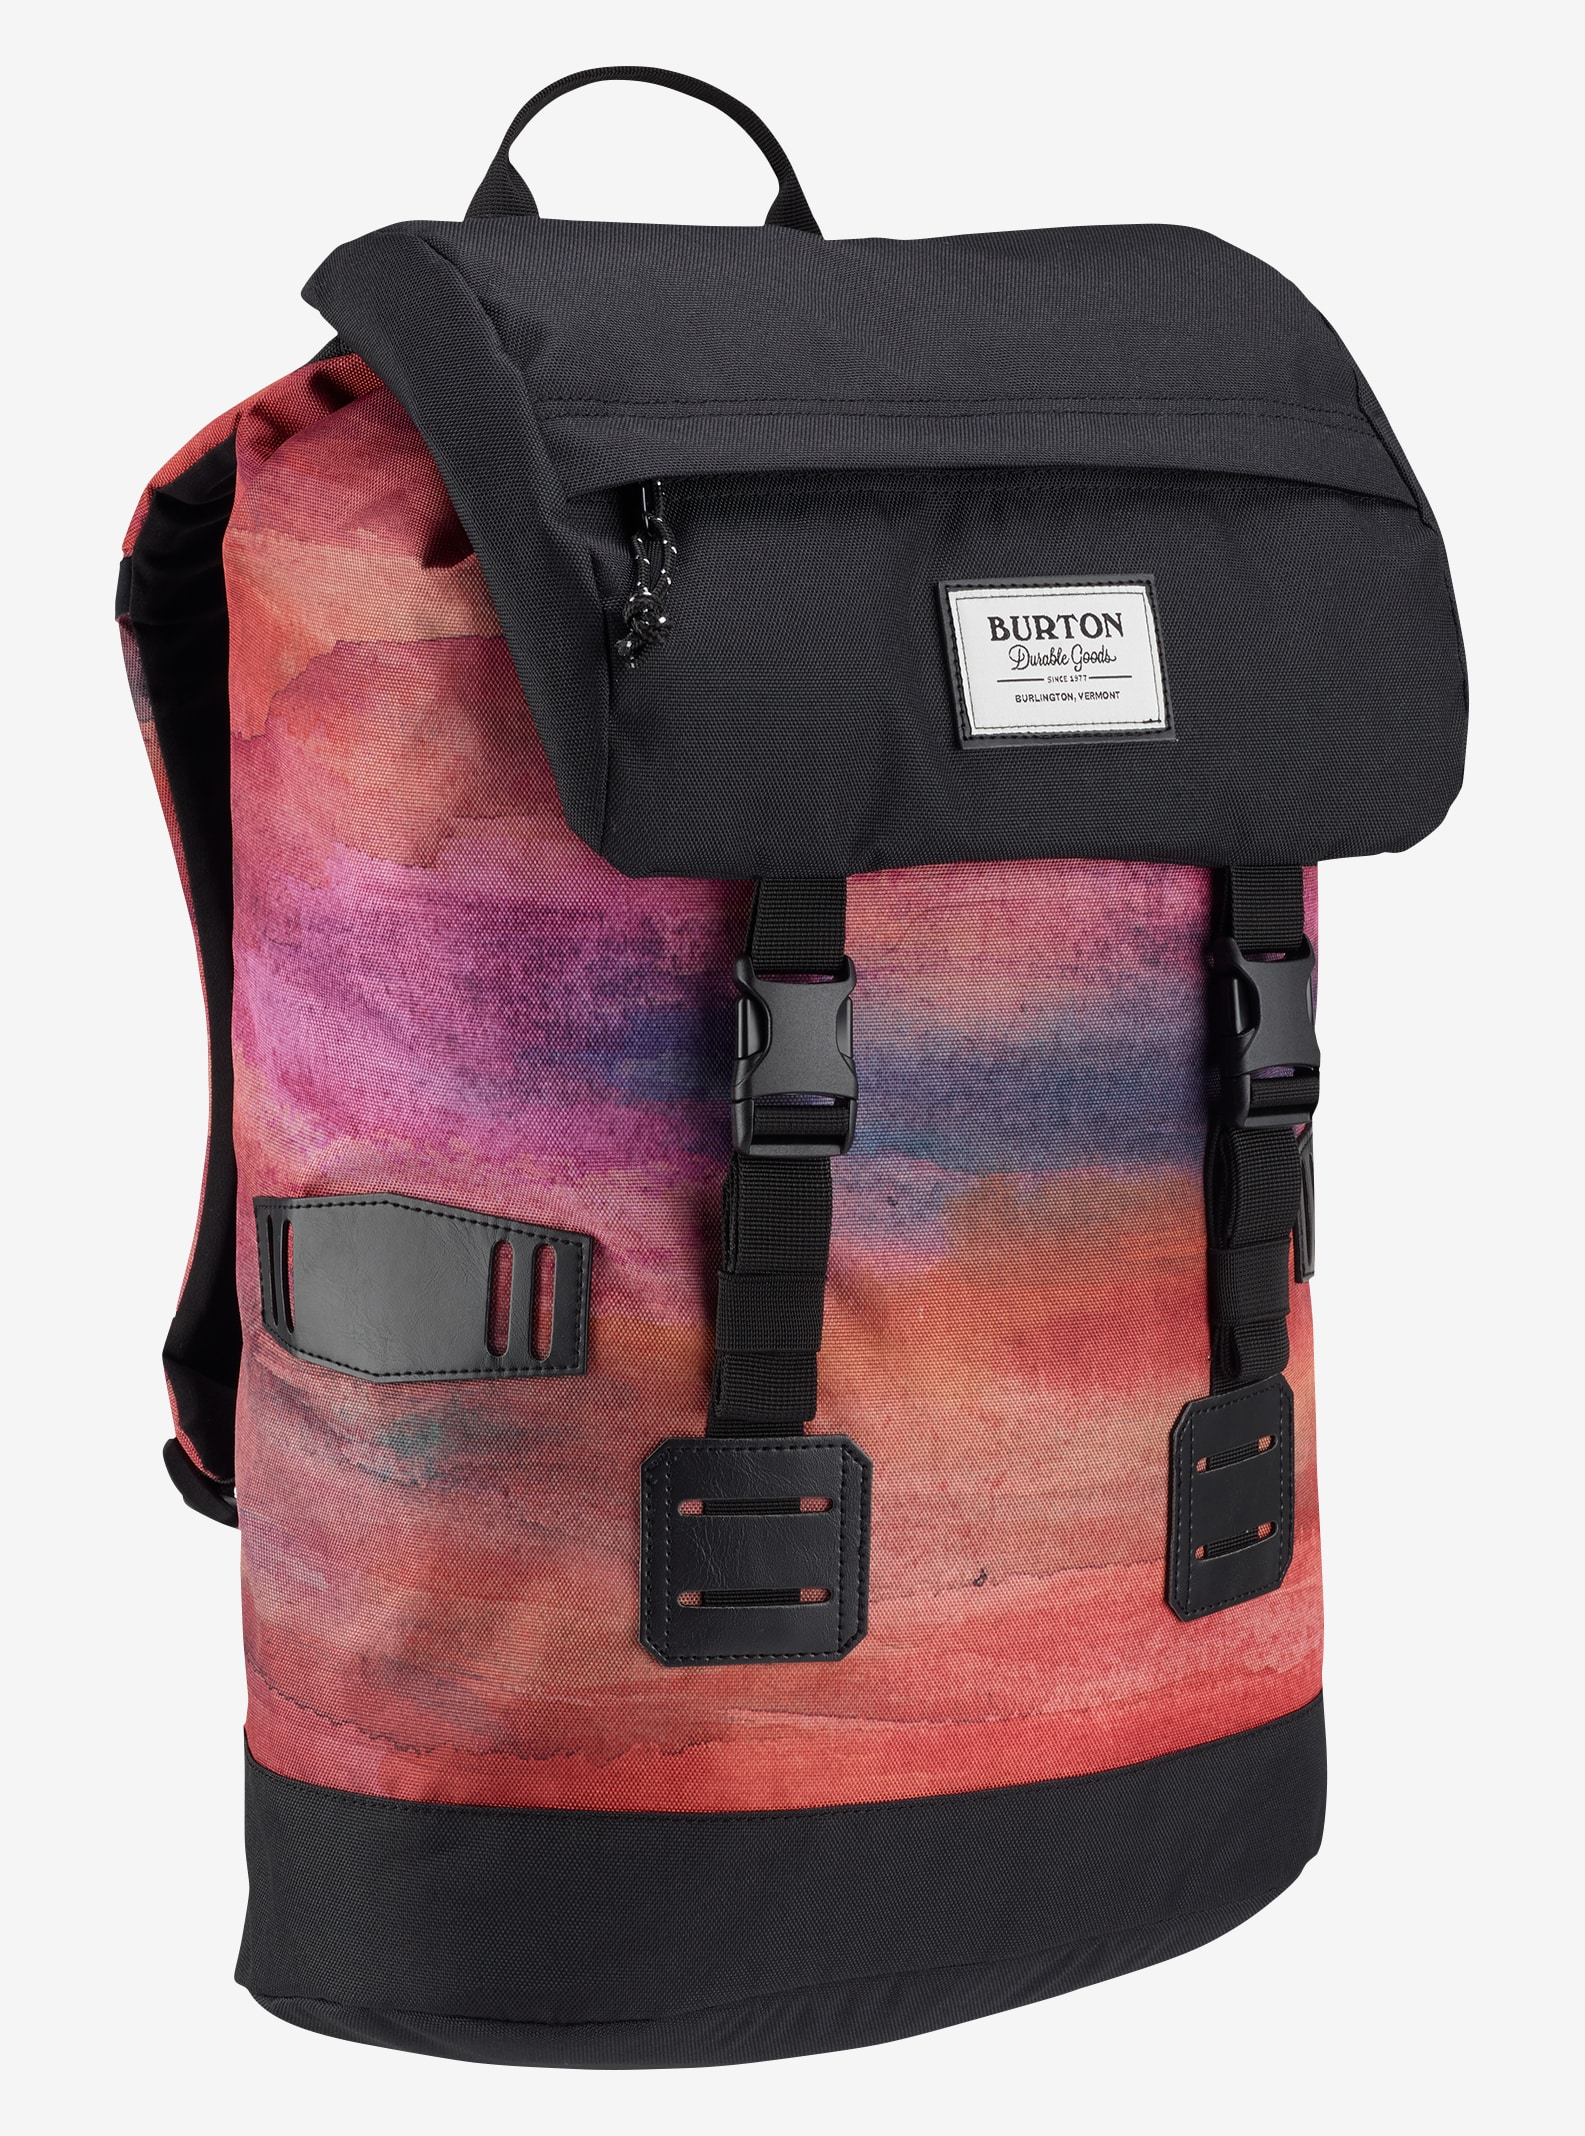 Burton Women's Tinder Backpack shown in Starling Sedona Print